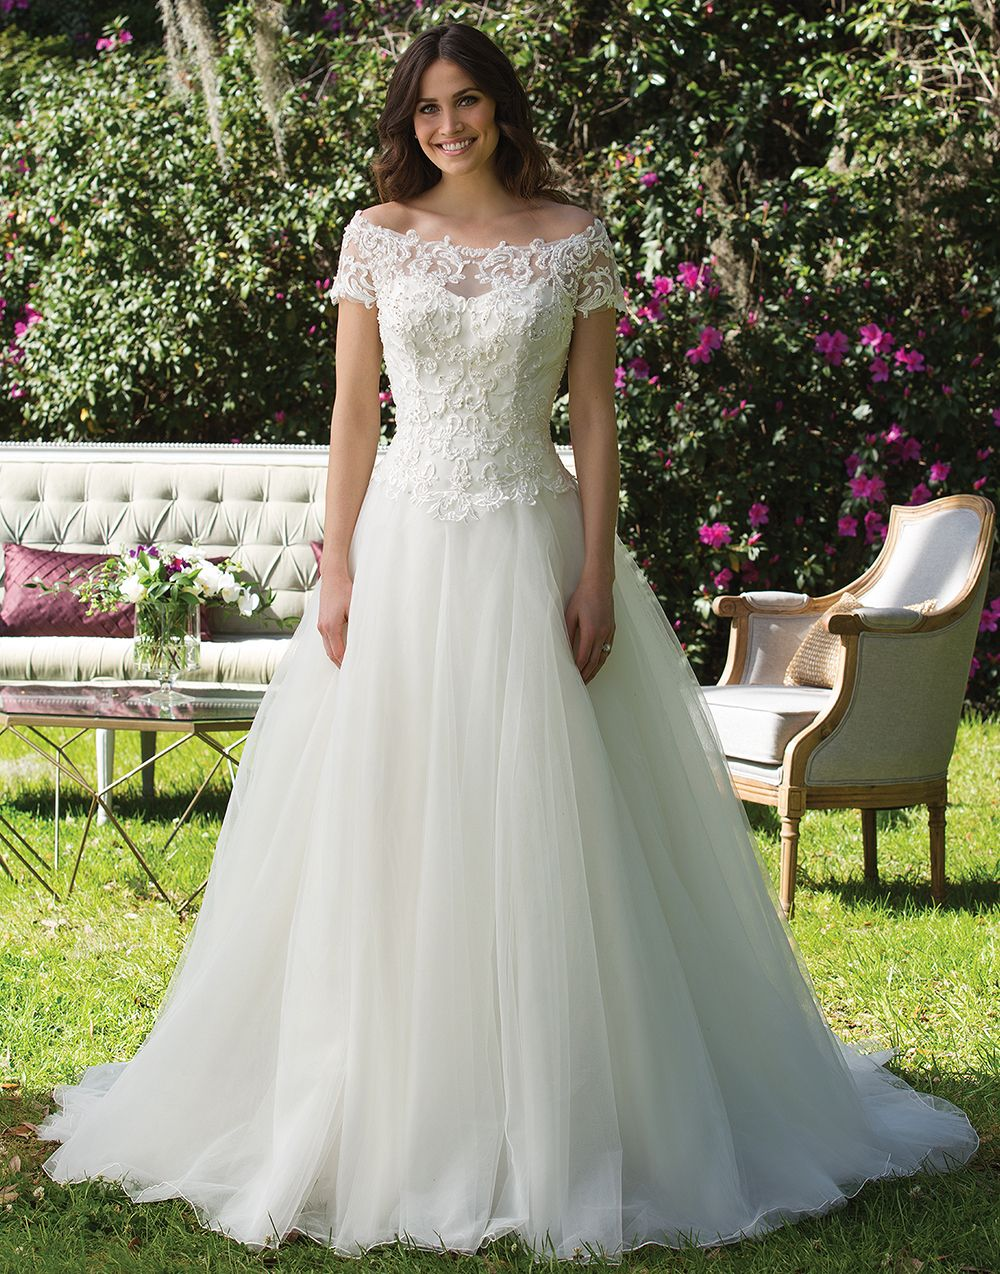 Sincerity Wedding Dress Style 3956 Heavily Beaded Embroidered Lace Bodice And Full Tulle Skirt Adorn